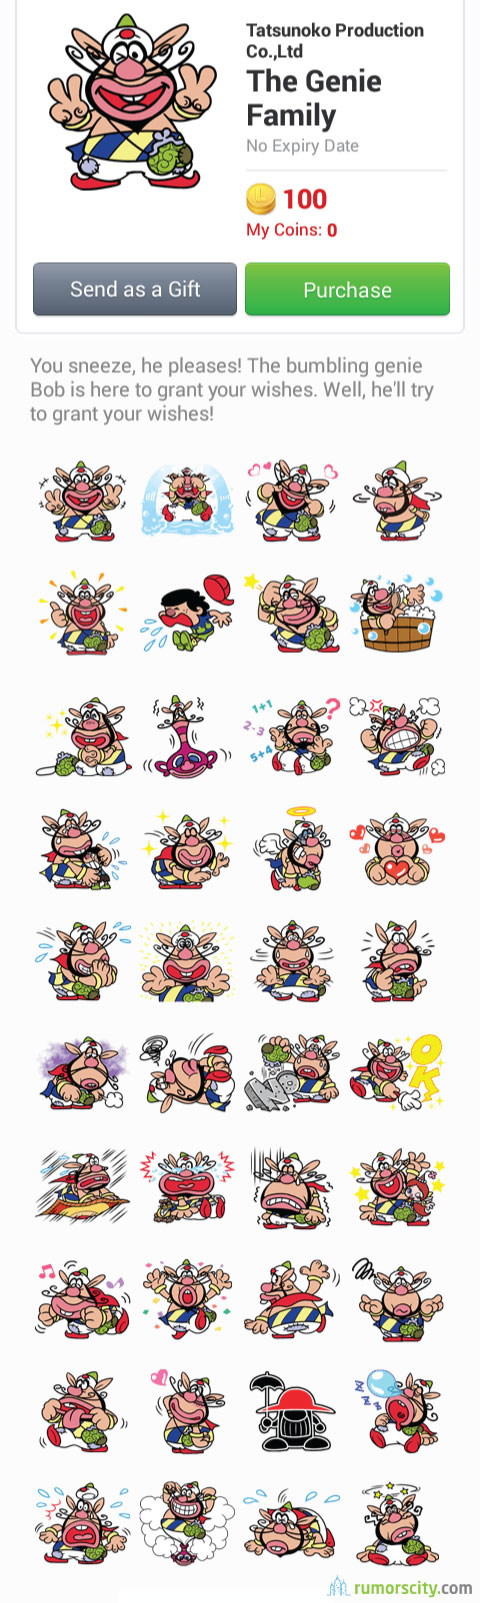 The-Genie-Family-Line-Sticker-in-Thailand-Paid-03